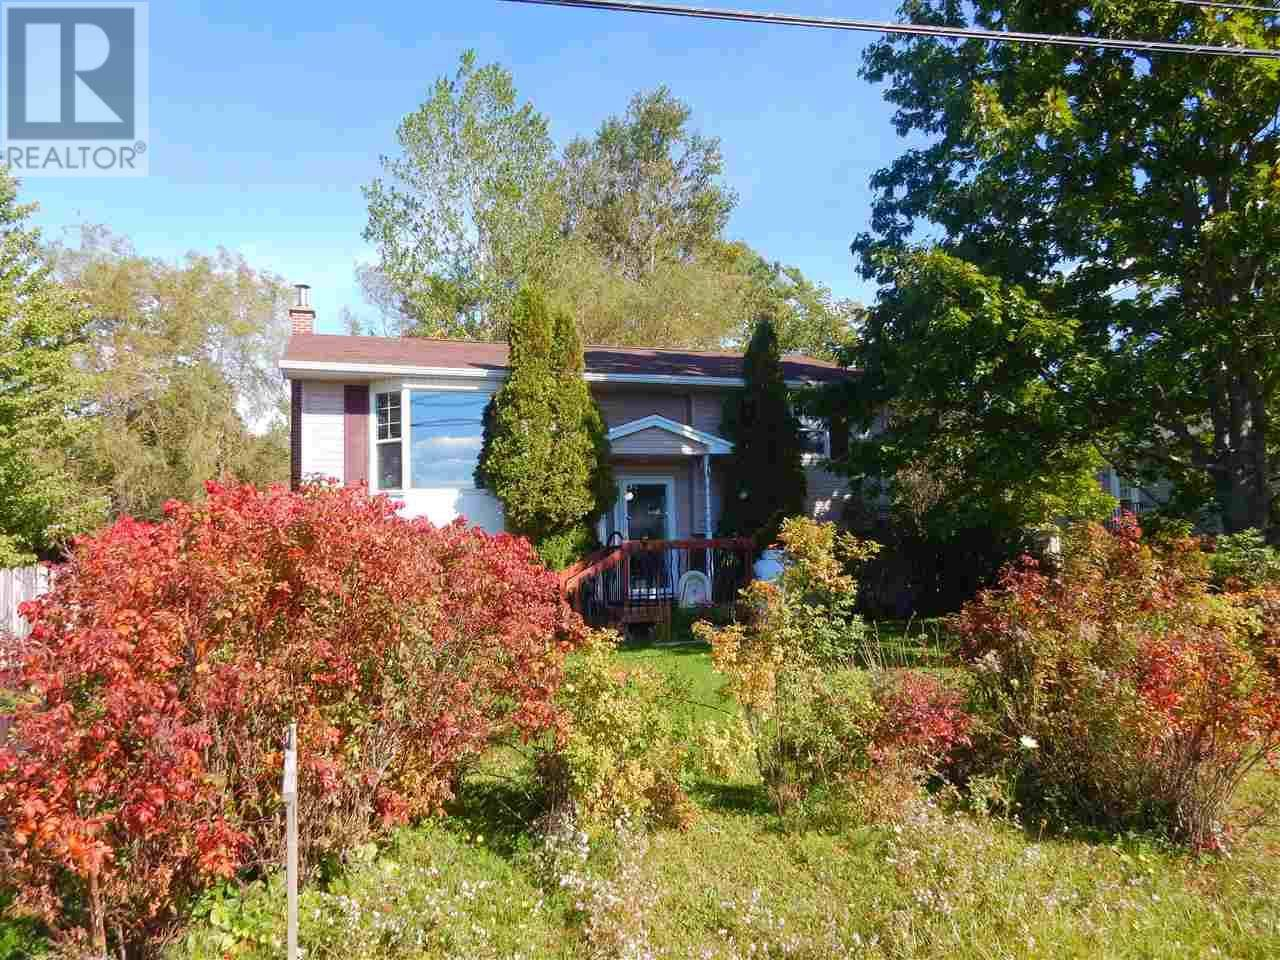 House for sale at 39 Old Enfield Rd Enfield Nova Scotia - MLS: 201923203